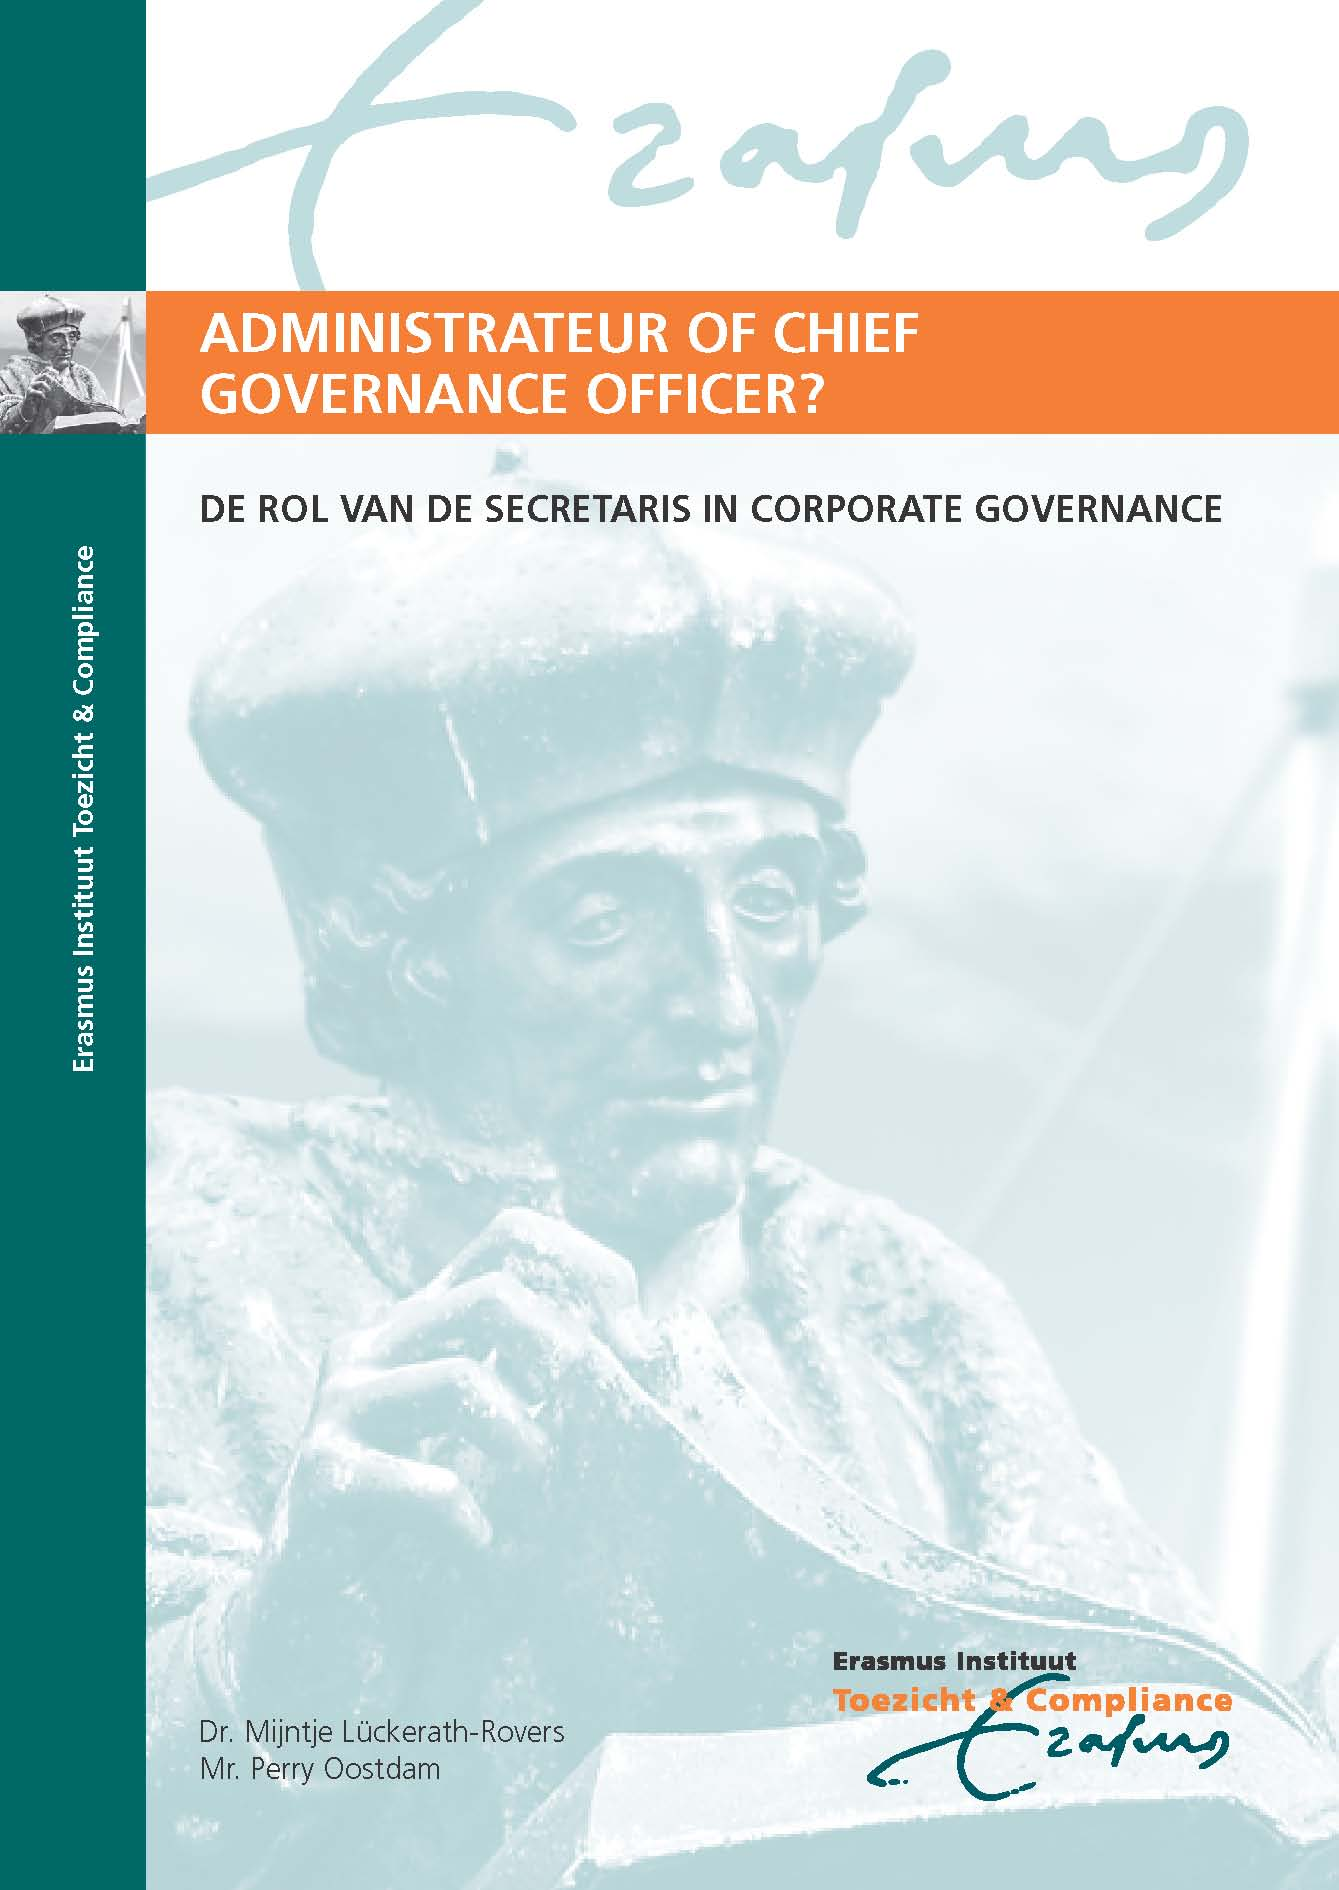 Plaatje bij Administrateur of Chief Governance Officer: De rol van de secretaris in Corporate Governance